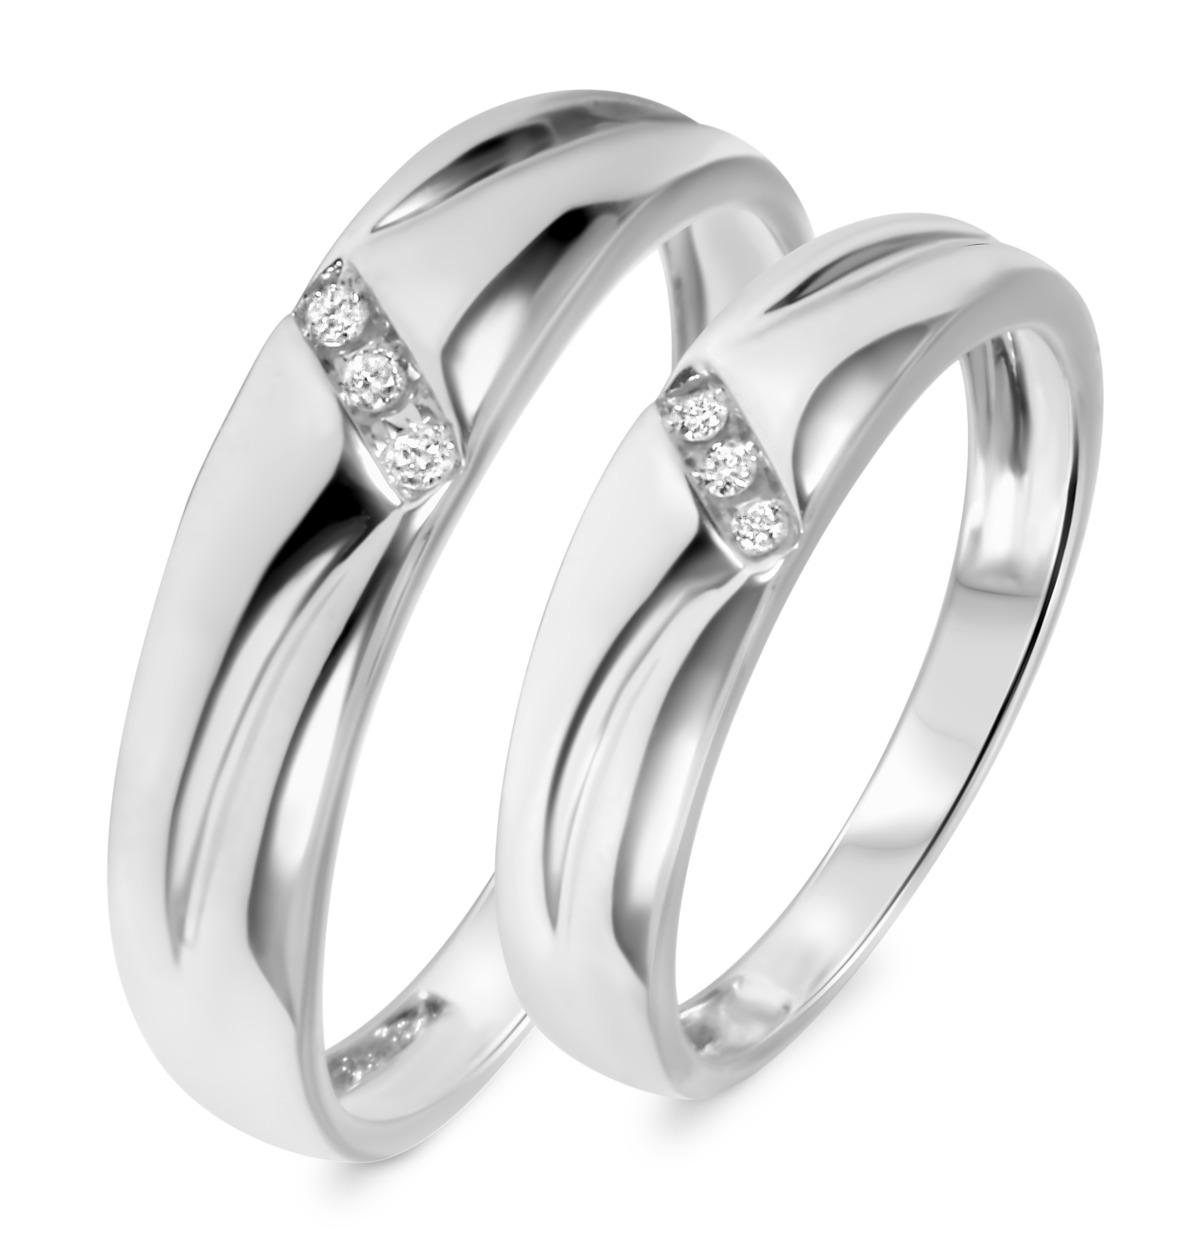 1/10 Carat T.W. Diamond His And Hers Wedding Band Set 10K White Gold